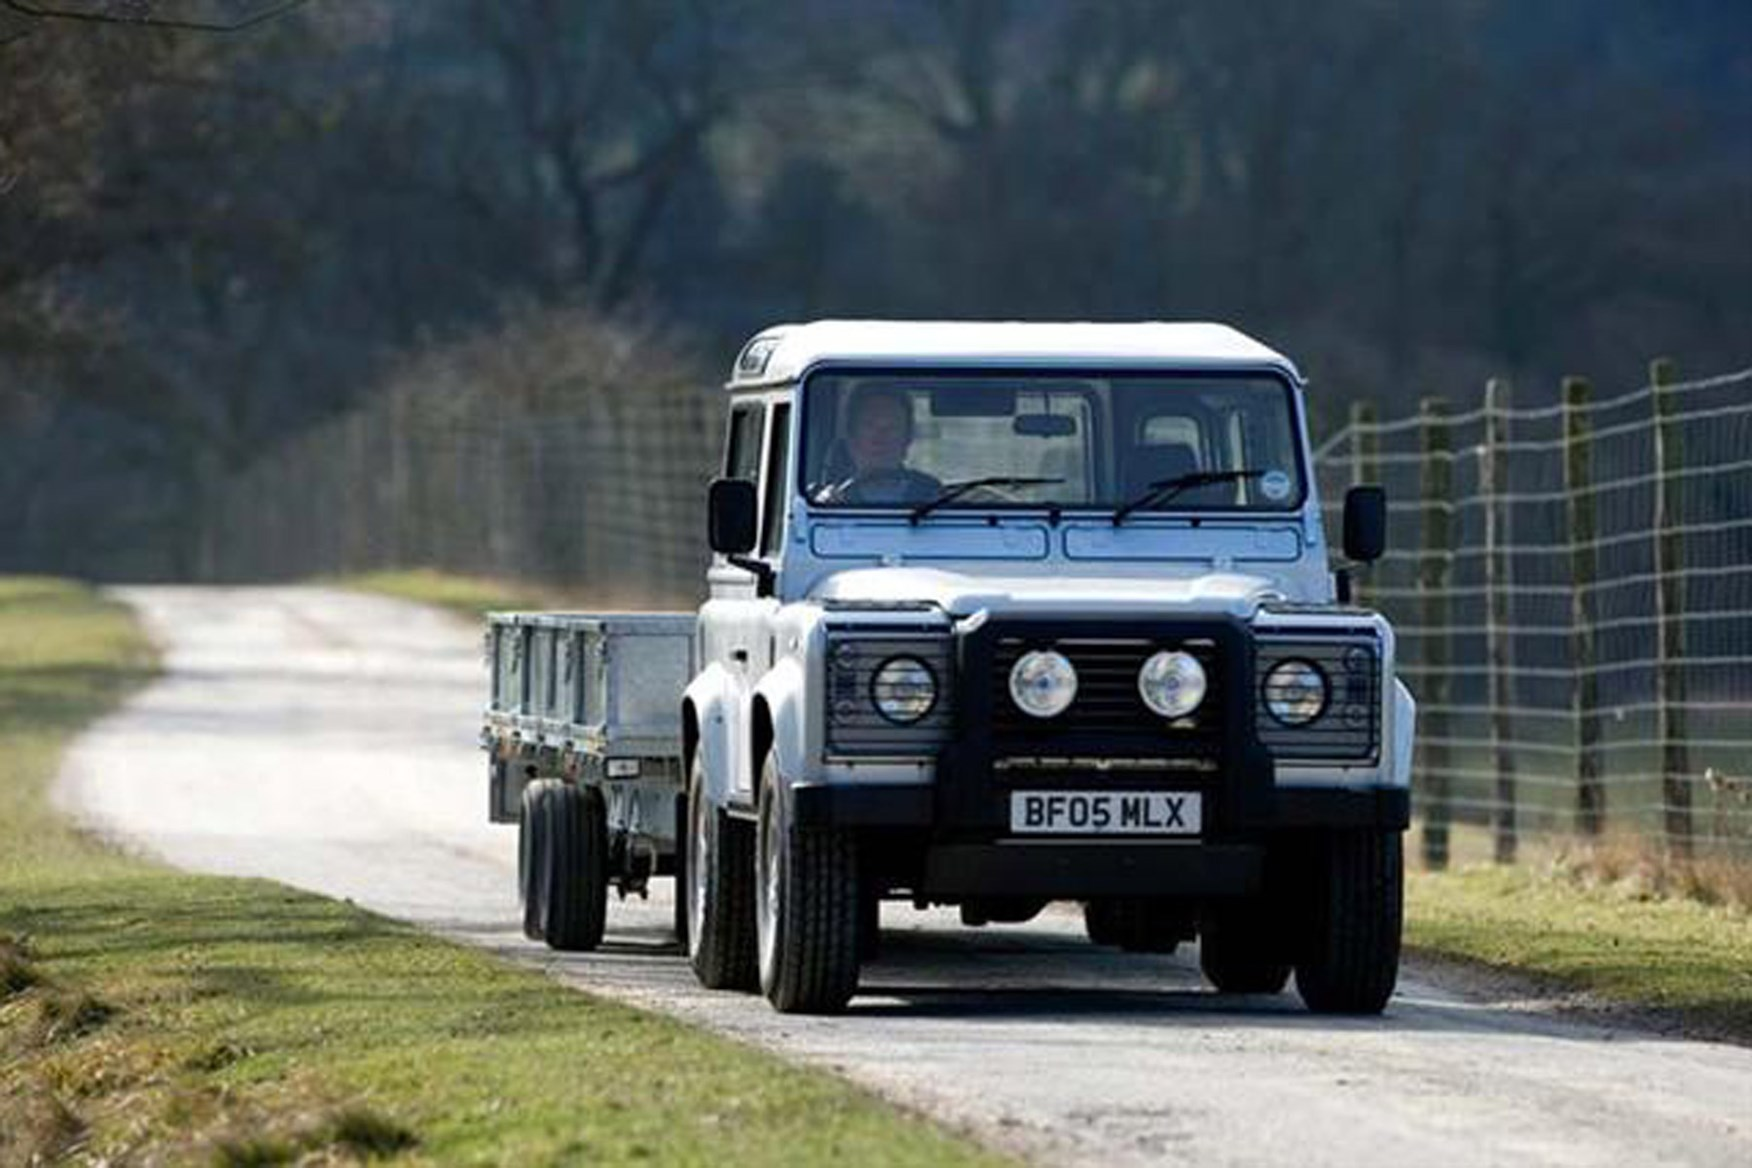 Land Rover Defender review on Parkers Vans - towing capability